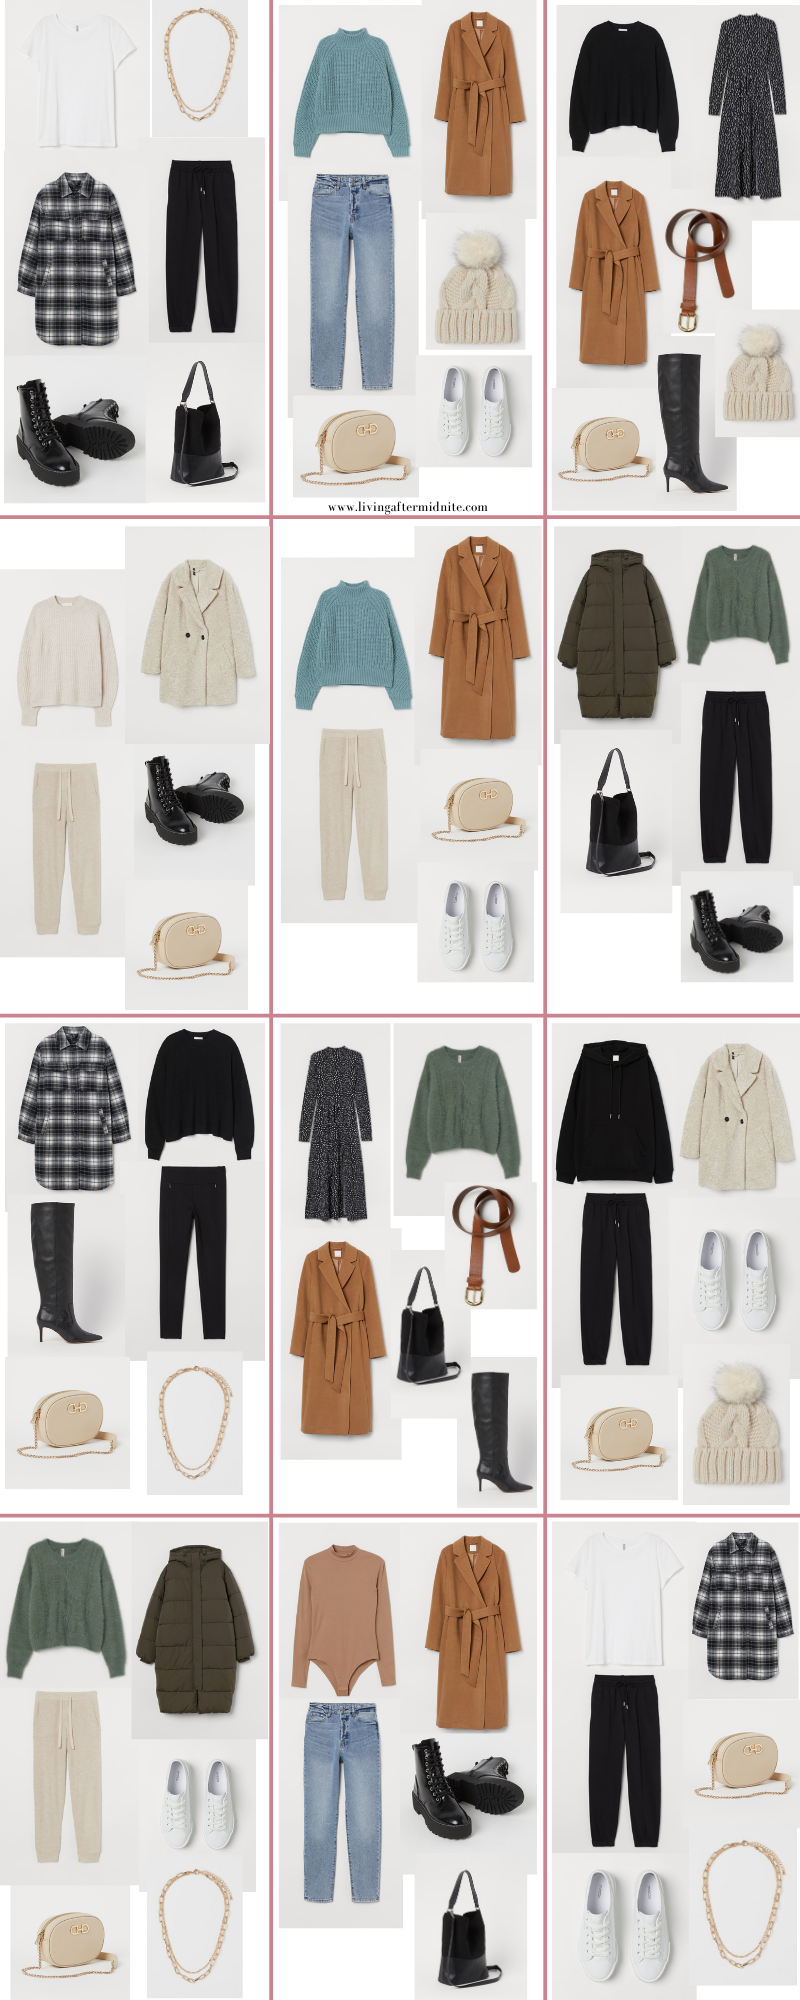 Affordable H&M Winter Capsule Wardrobe | 26 Pieces, 48+ Outfits | How to Build a Capsule Wardrobe | H&M Winter Clothes | Outfit Inspiration | Winter Fashion | 48 Cold Weather Outfit Ideas | Winter Vacation Packing Guide | Winter Outfits 2020 2021